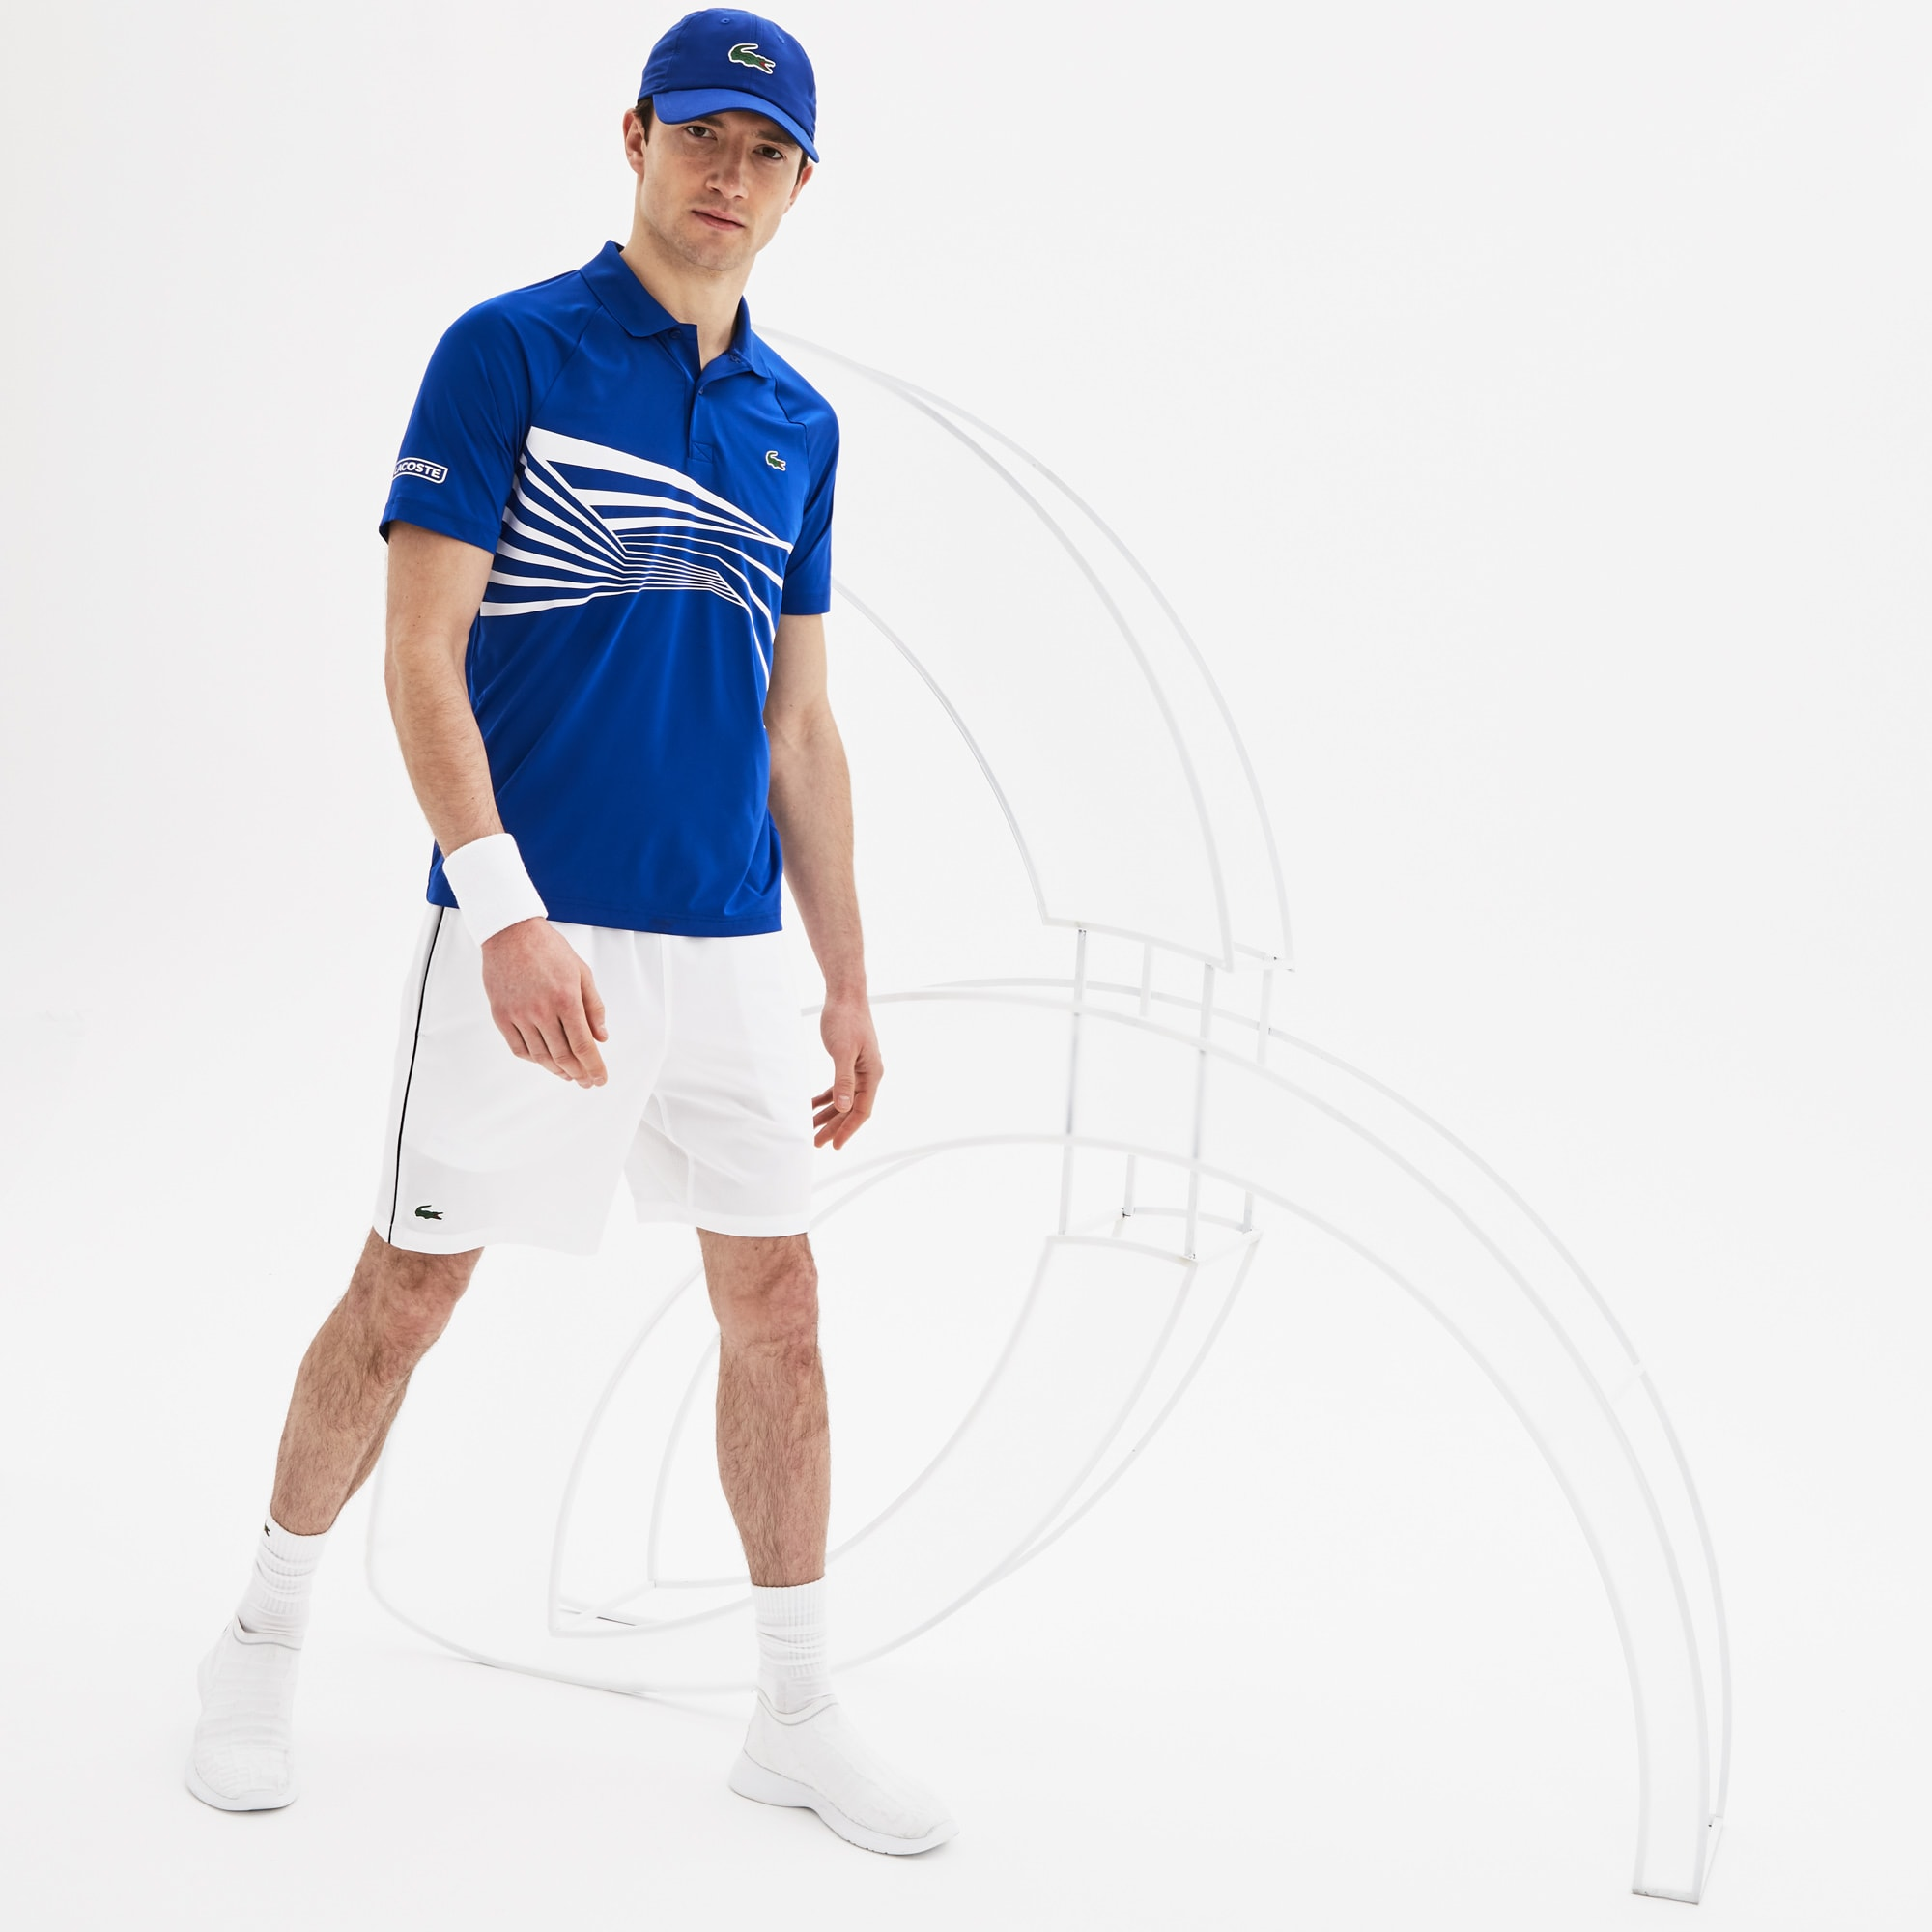 Lacoste Korte Broek Heren.The Lacoste Sports Collection For Men Lacoste